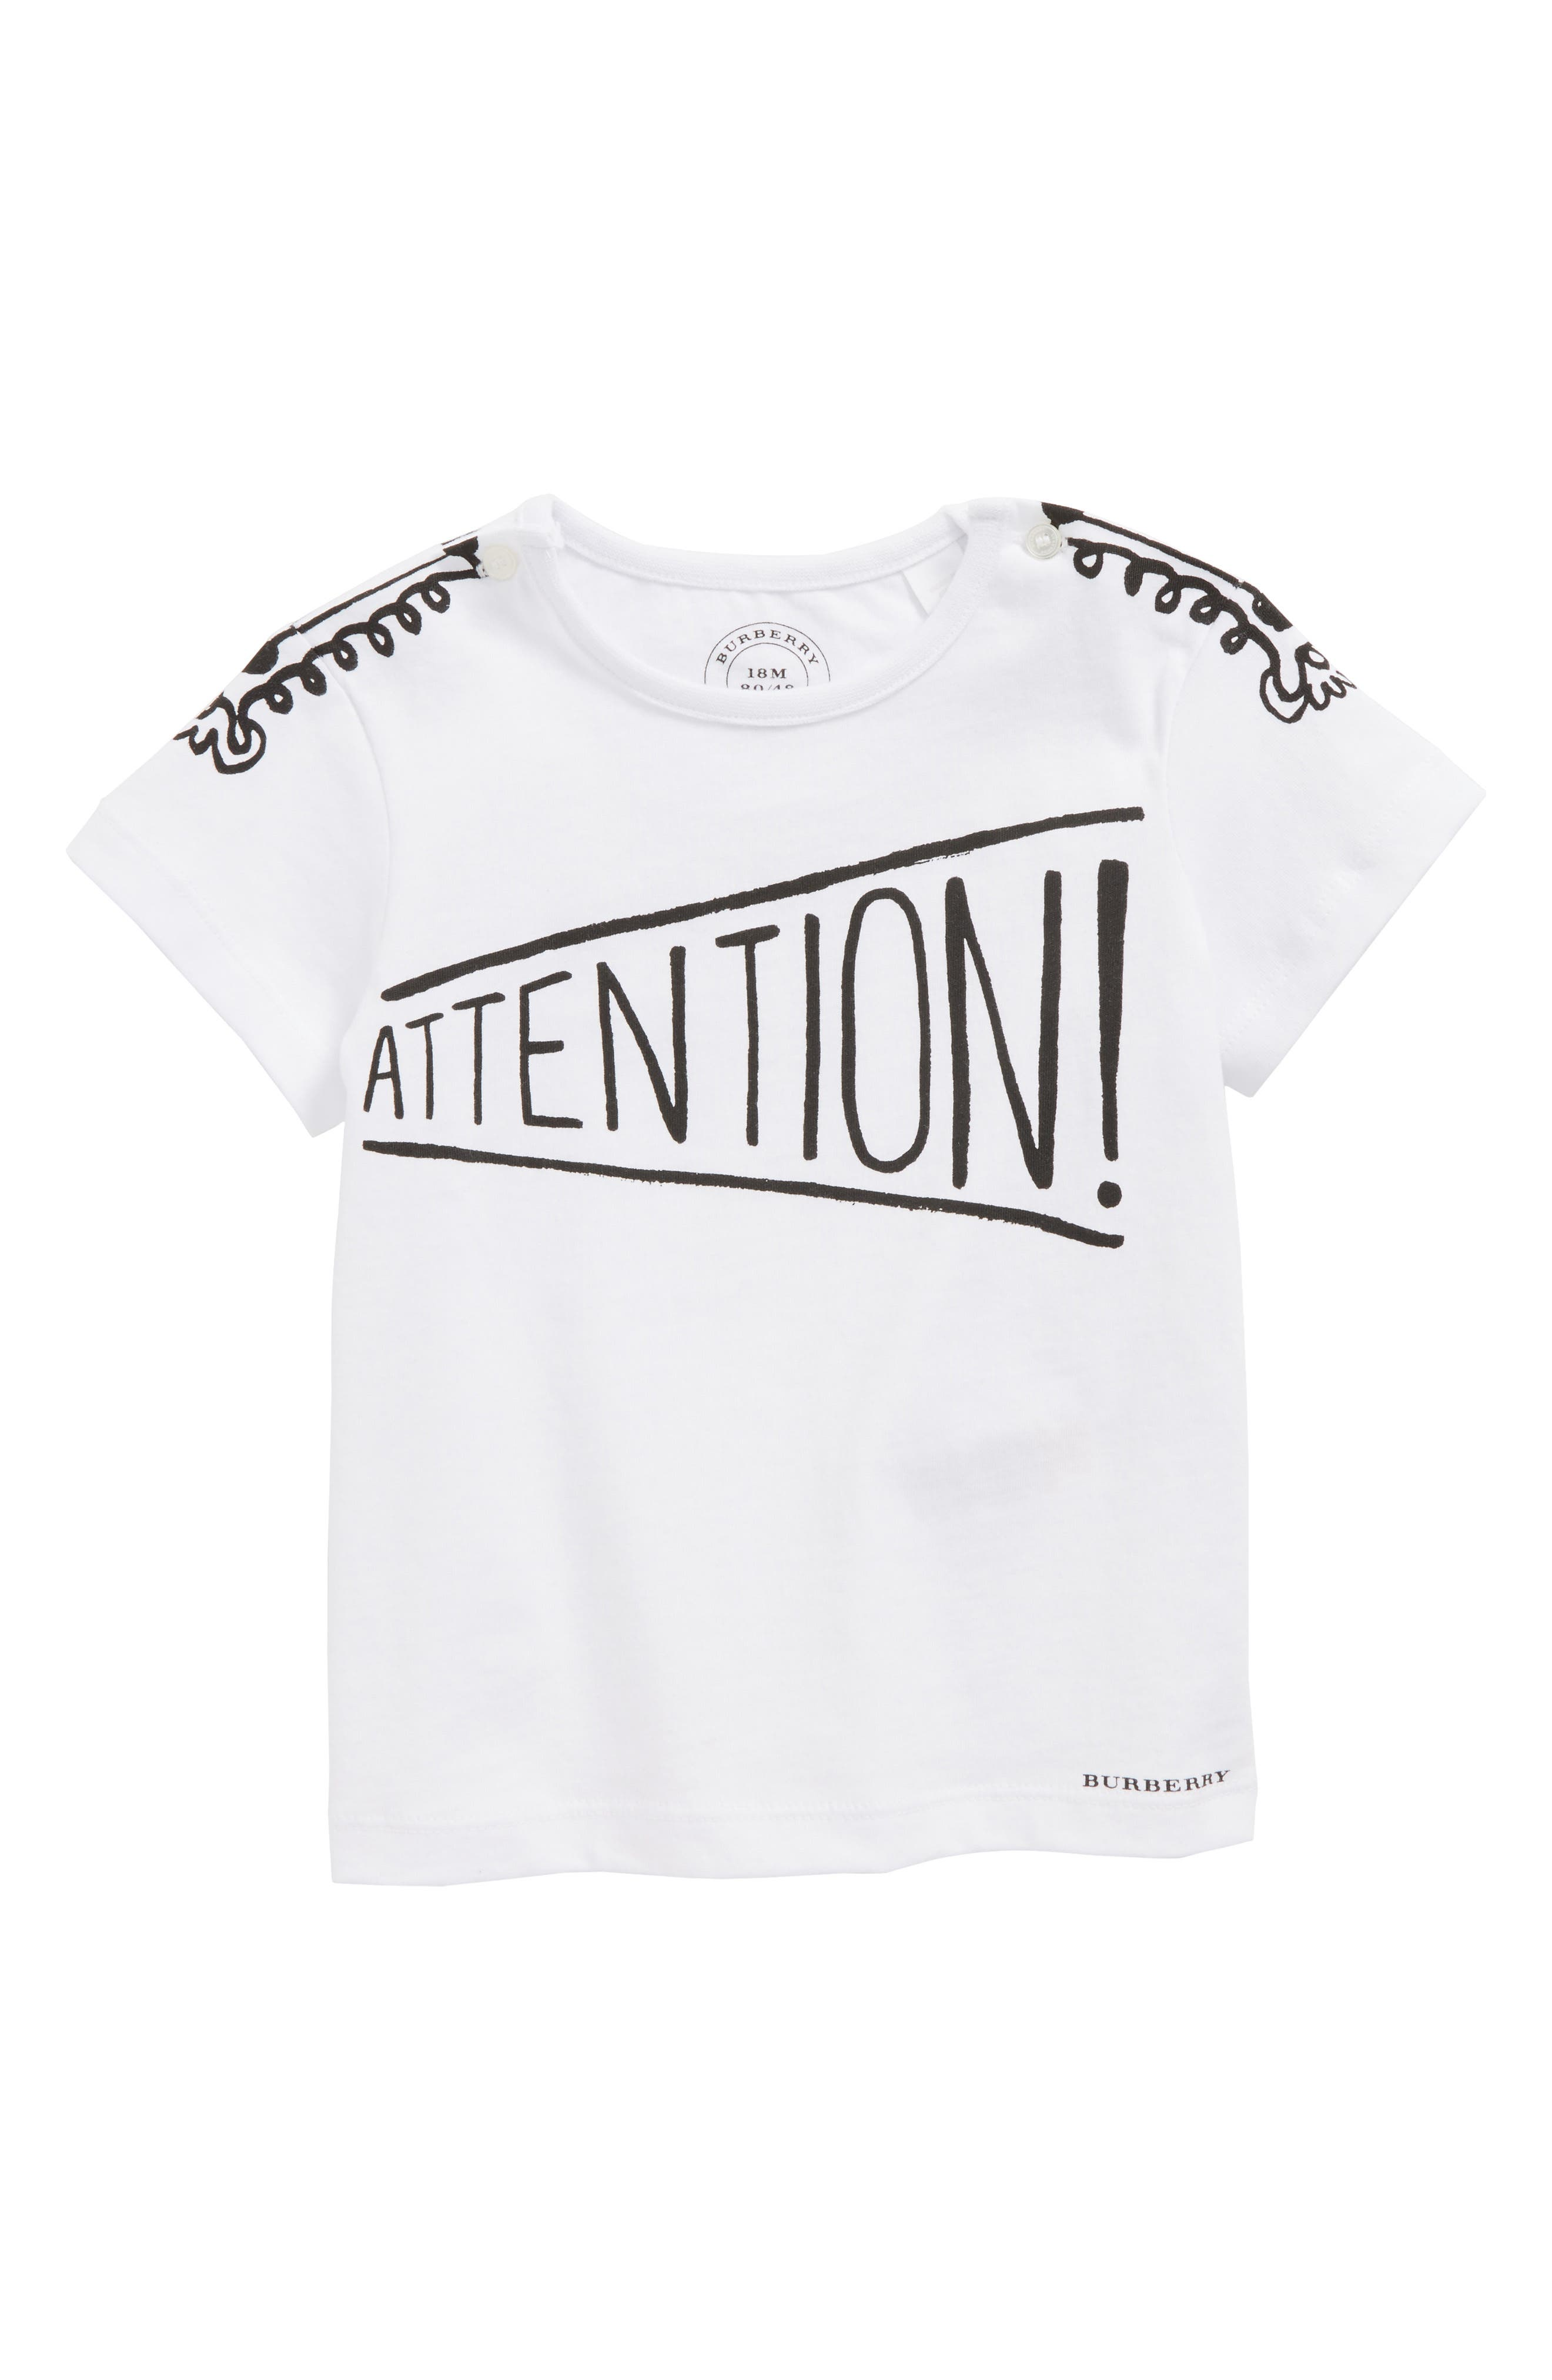 Attention T-Shirt,                             Main thumbnail 1, color,                             White